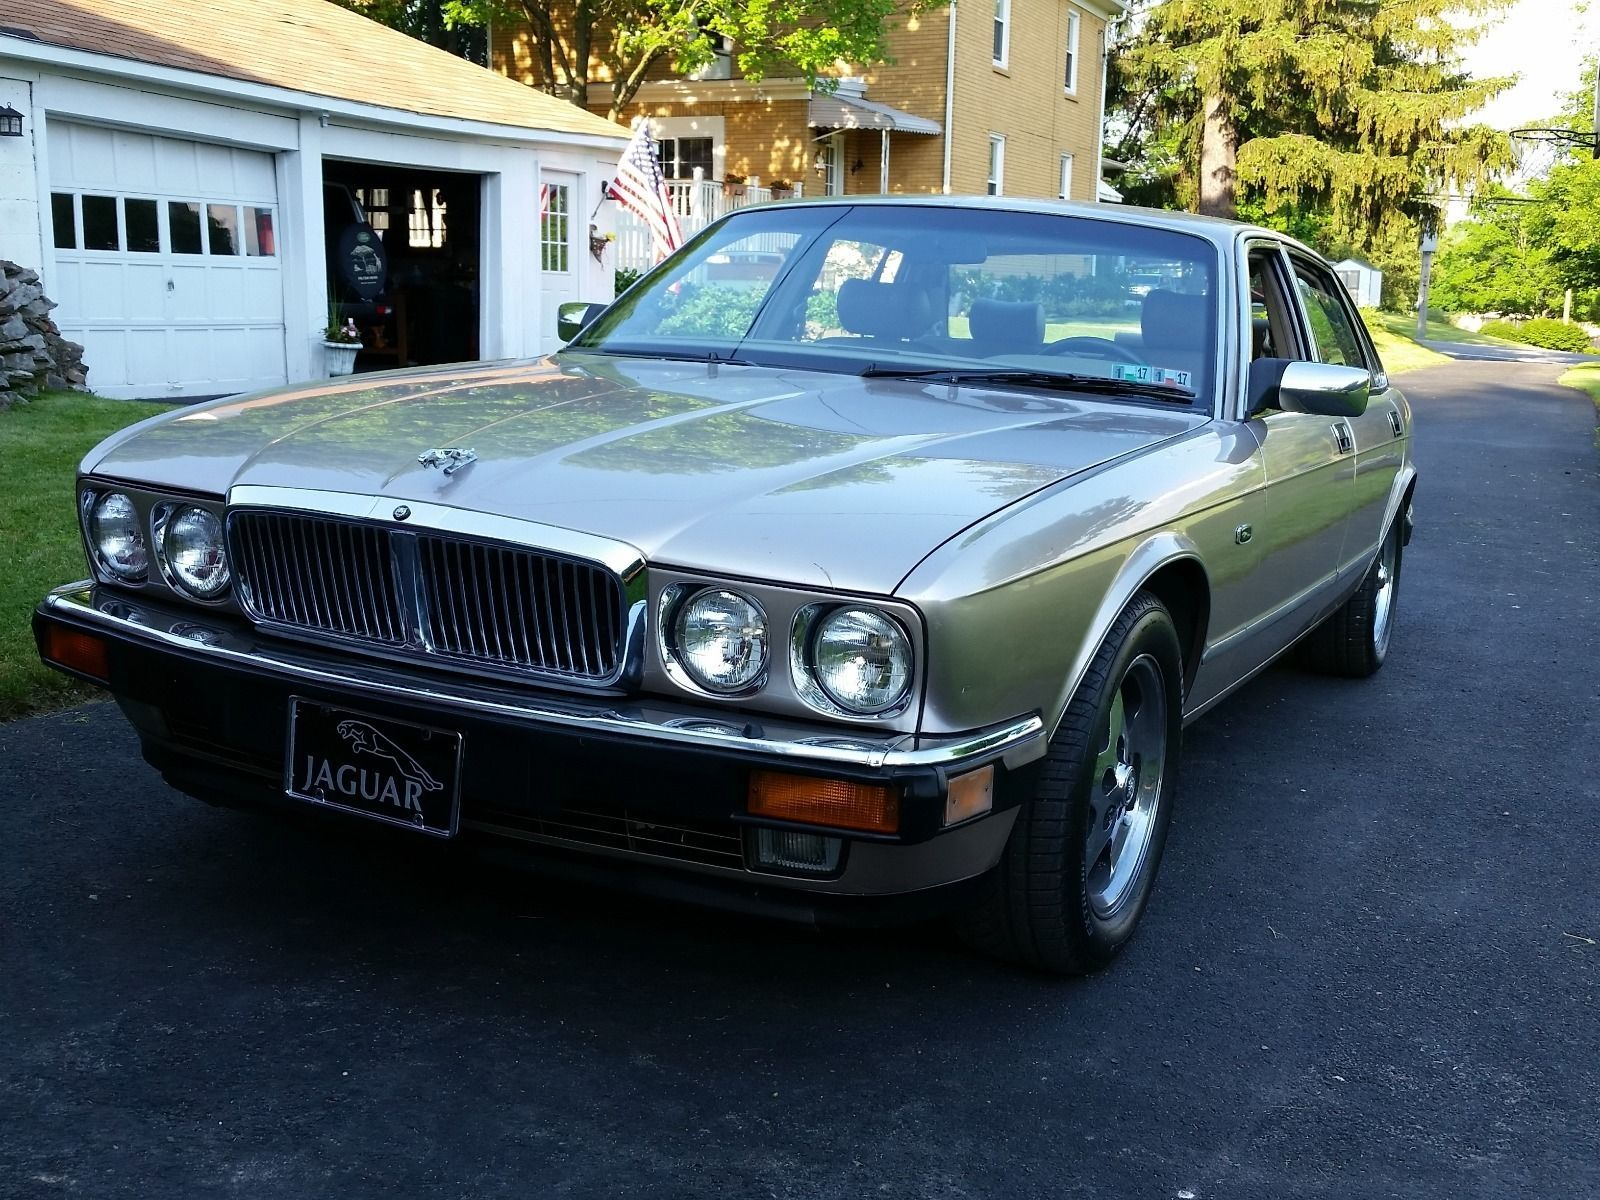 47a979e1c4b24afe6d22c66ade887bac Take A Look About 1990 Jaguar Xj6